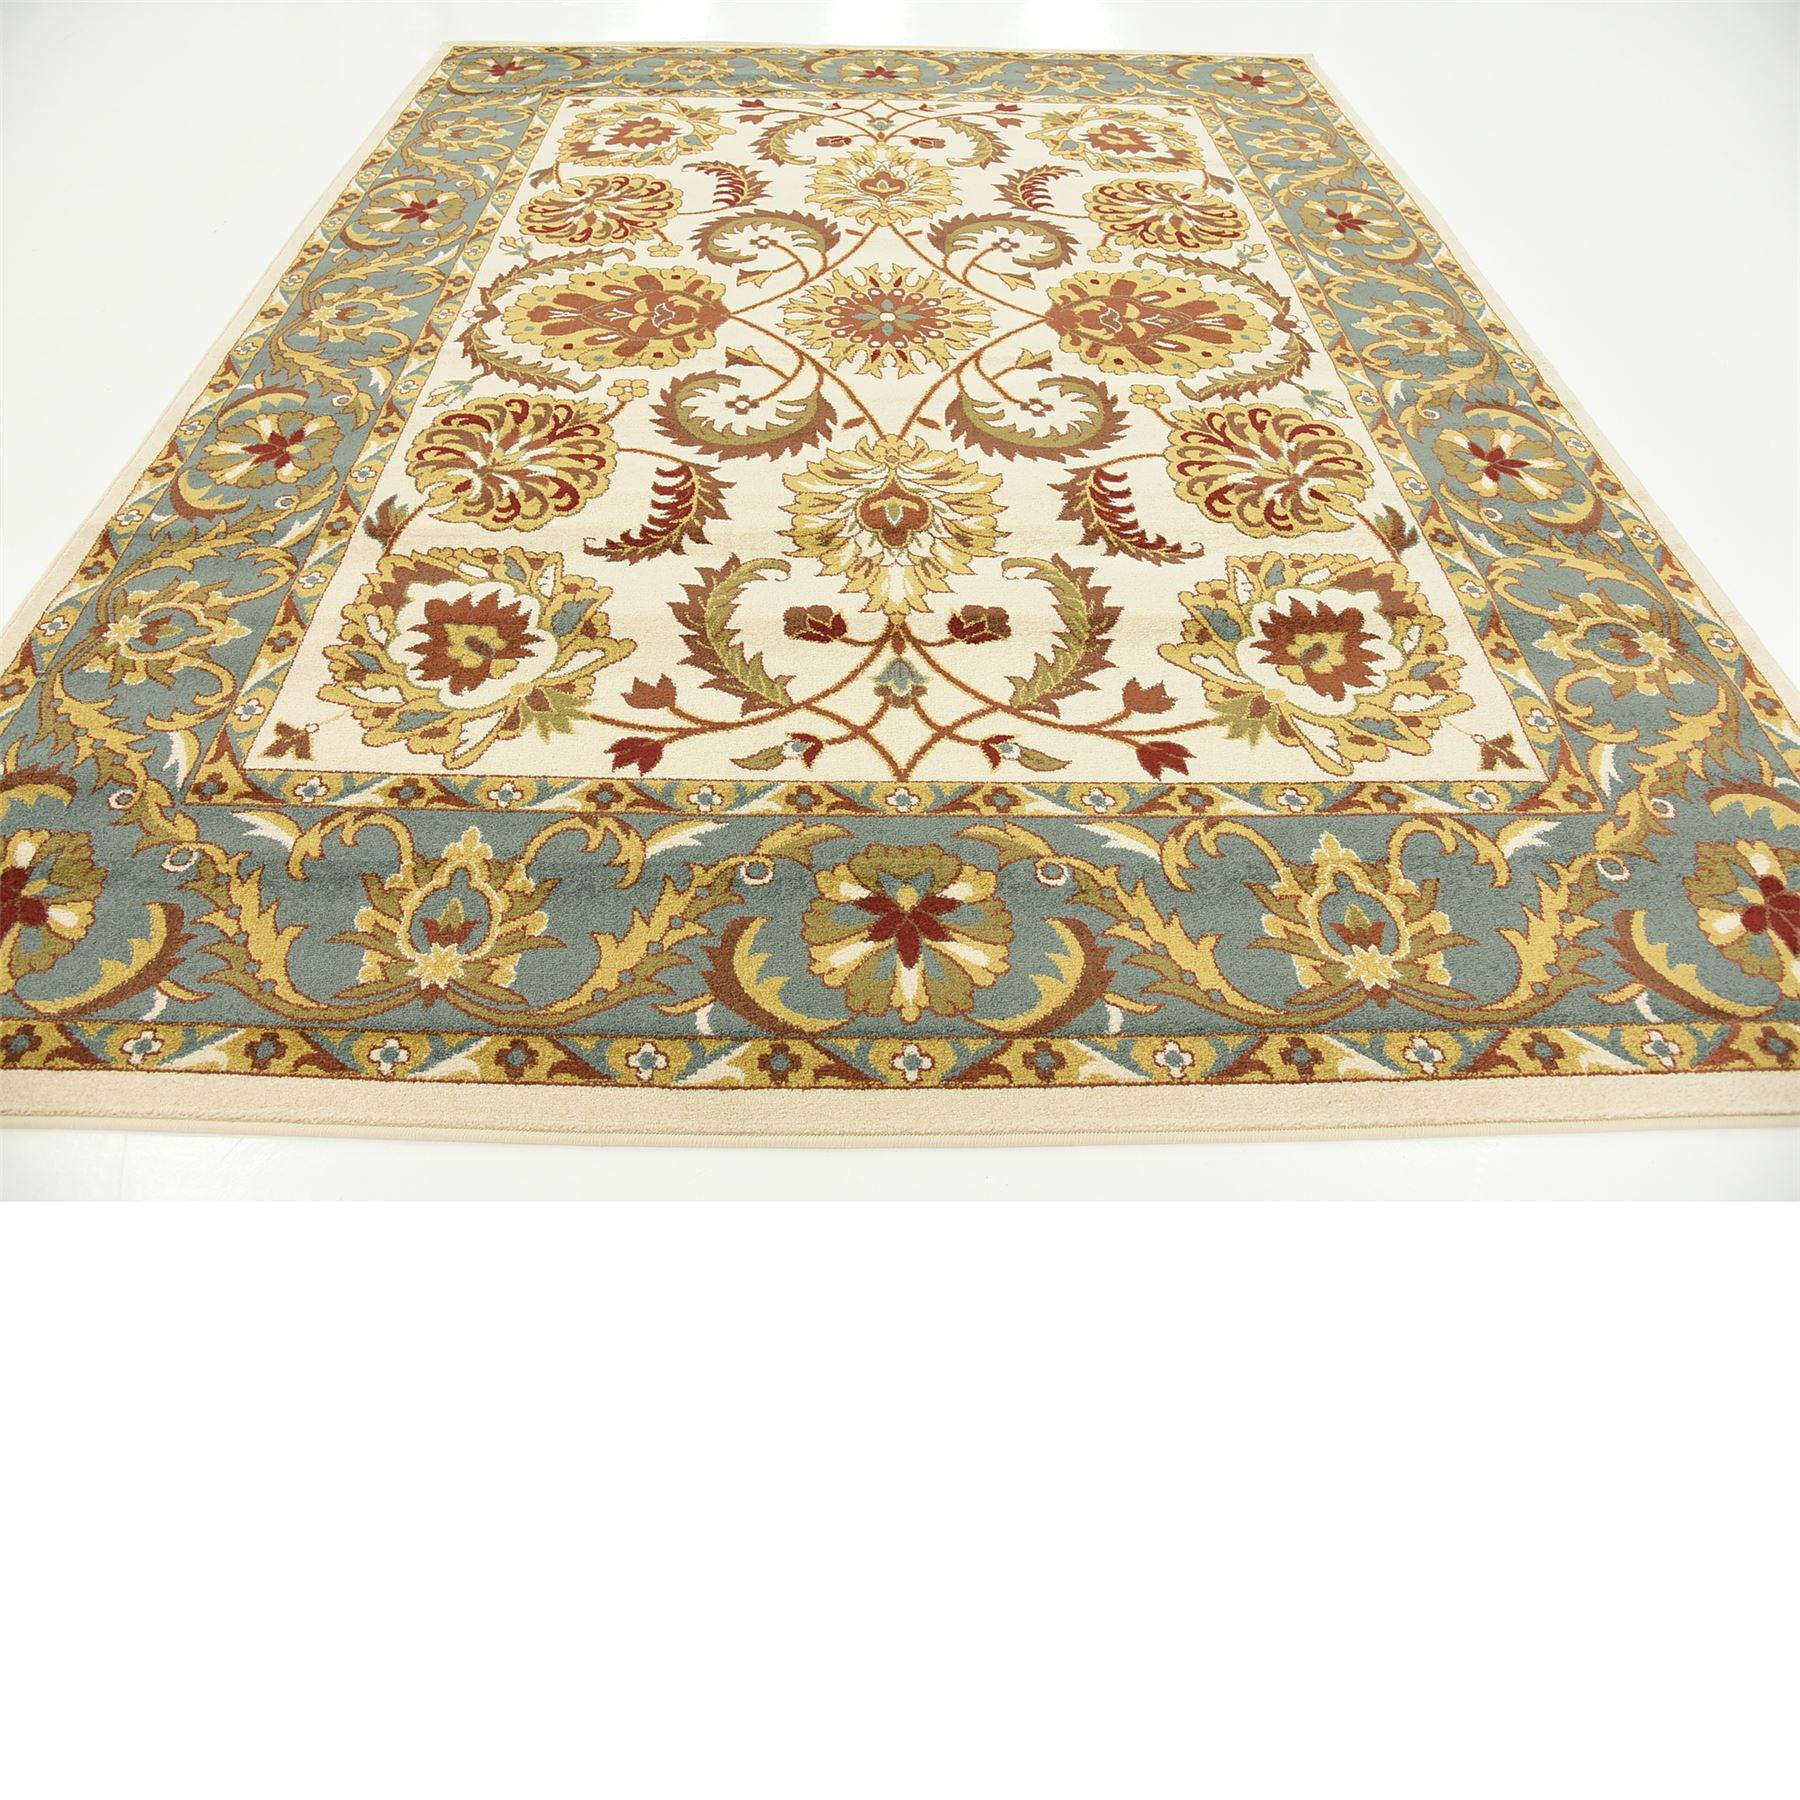 Oriental Floral Traditional Area Rugs Beige 8' X 10' Agra